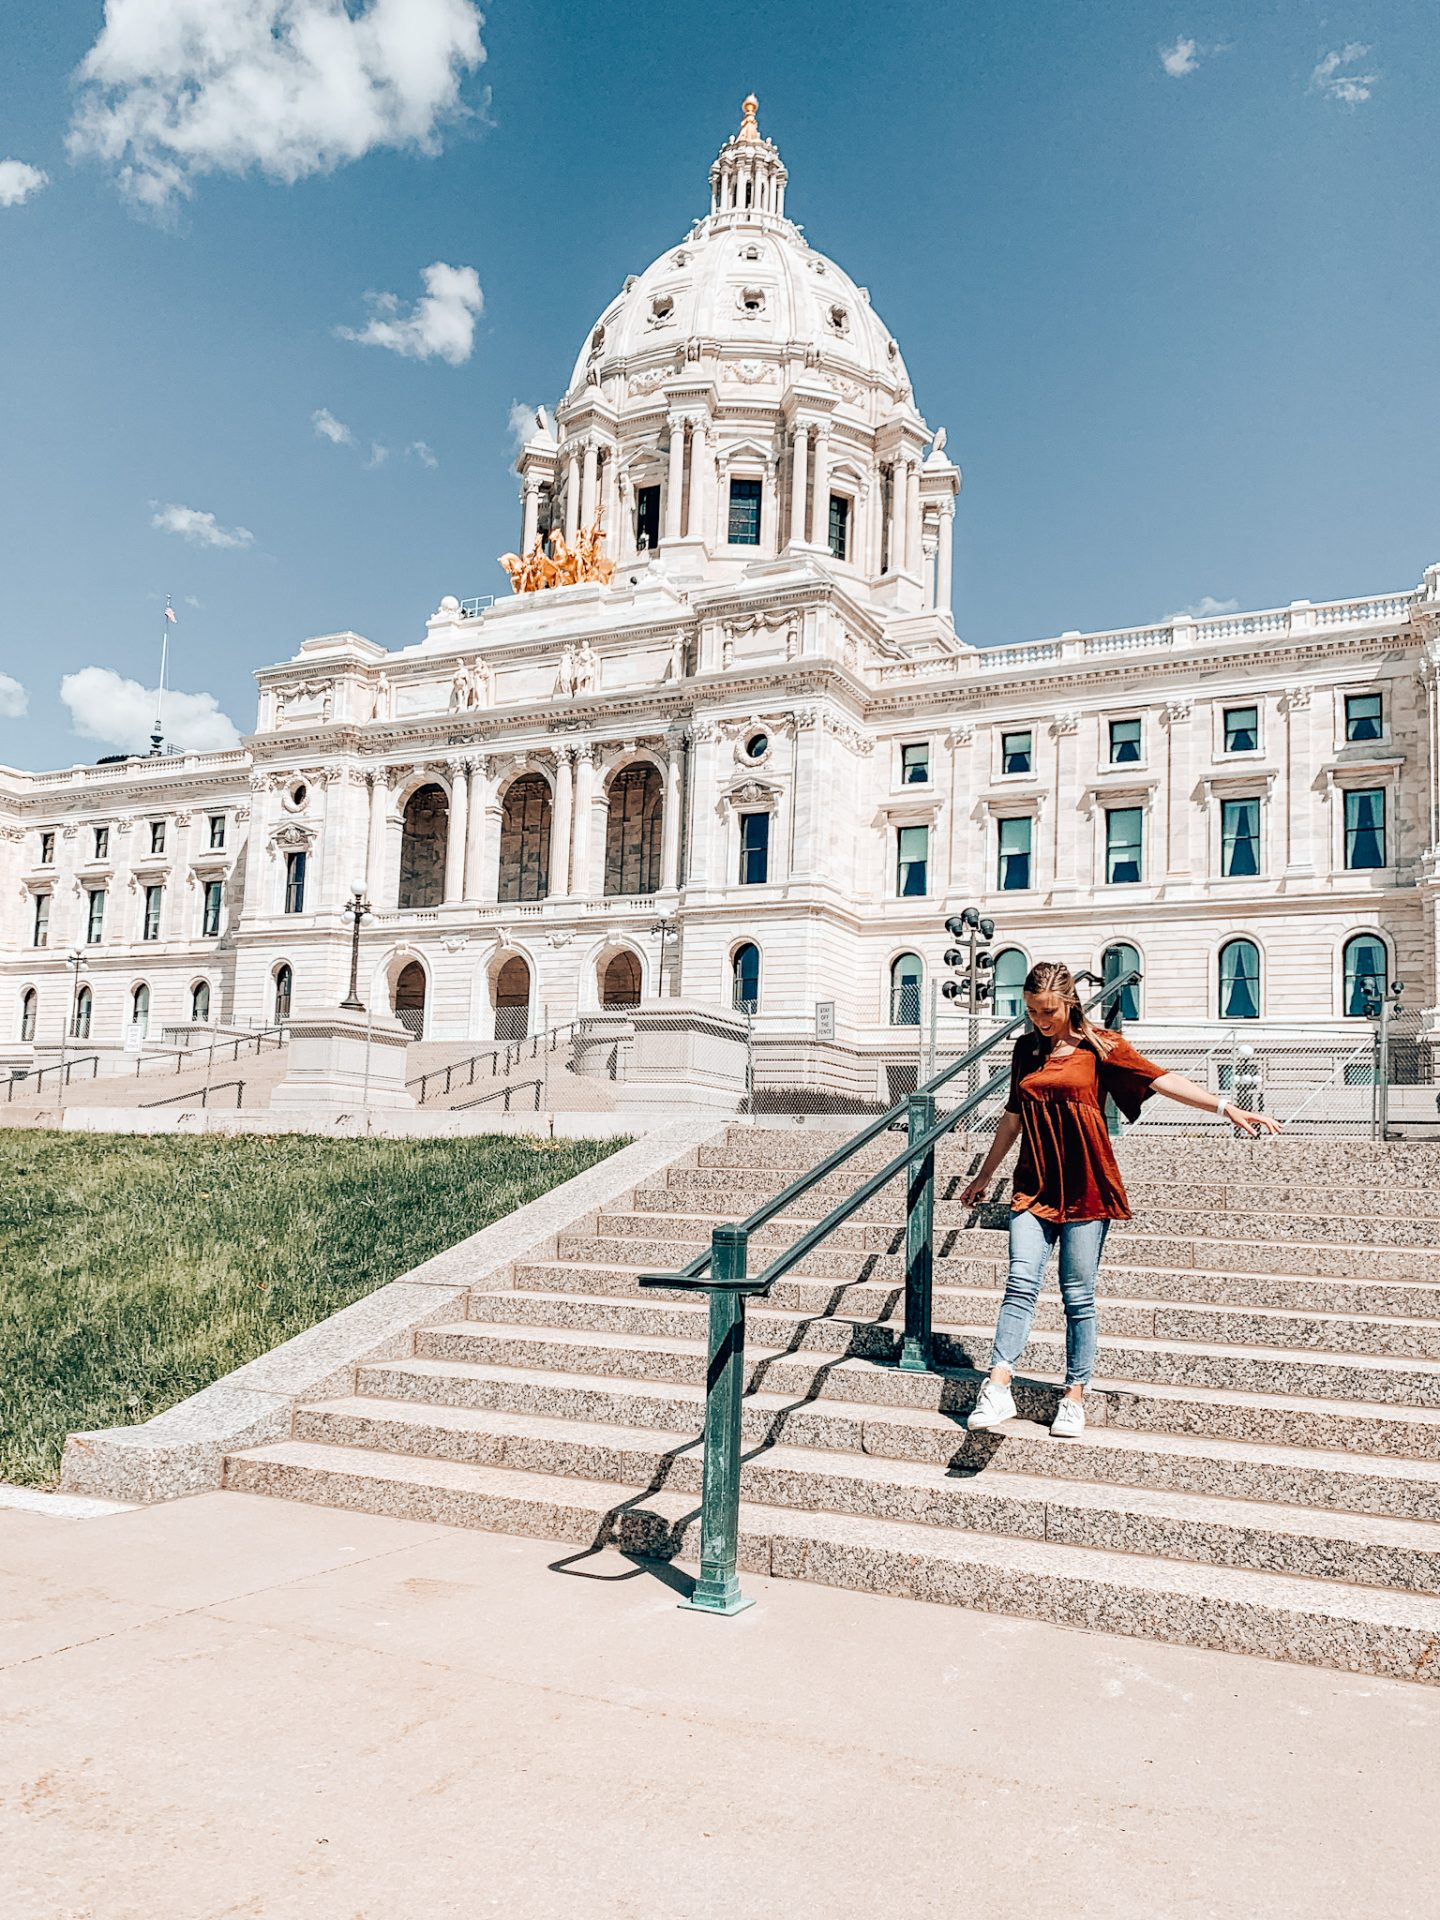 The Capitol Building in downtown St. Paul in Minnesota